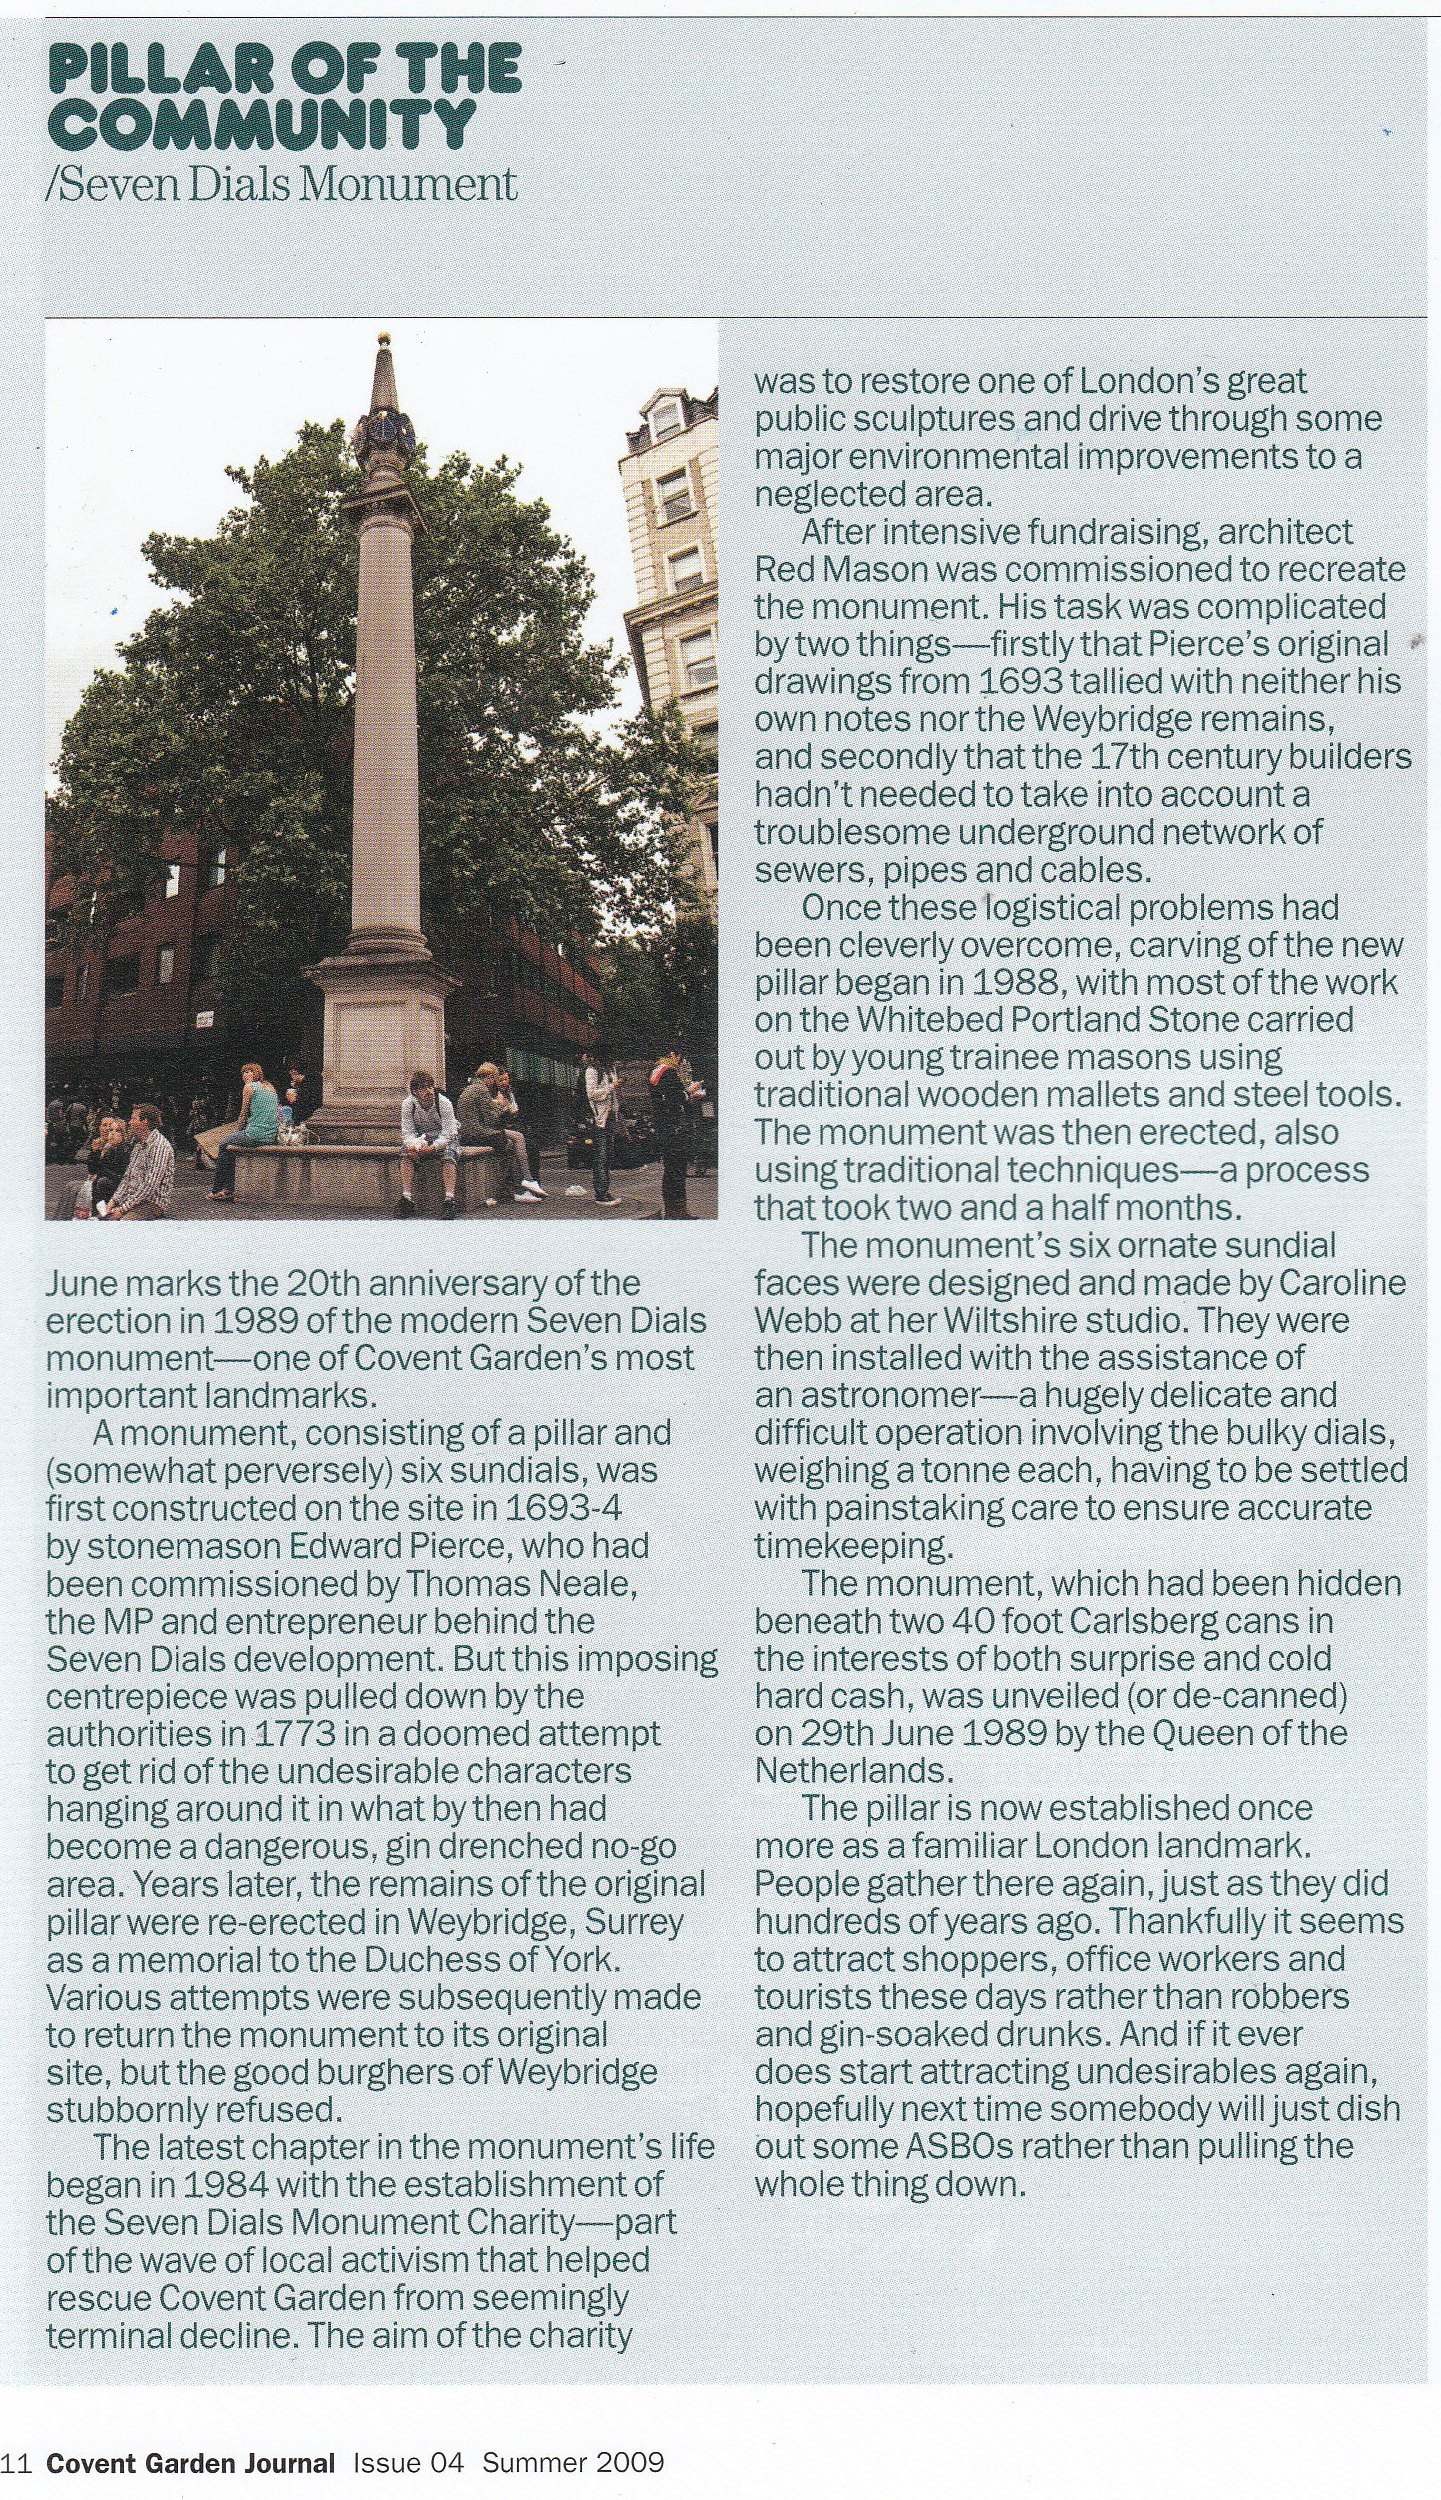 1 July 2009 – Covent Garden Journal: Pillar of the community, Seven Dials monument.